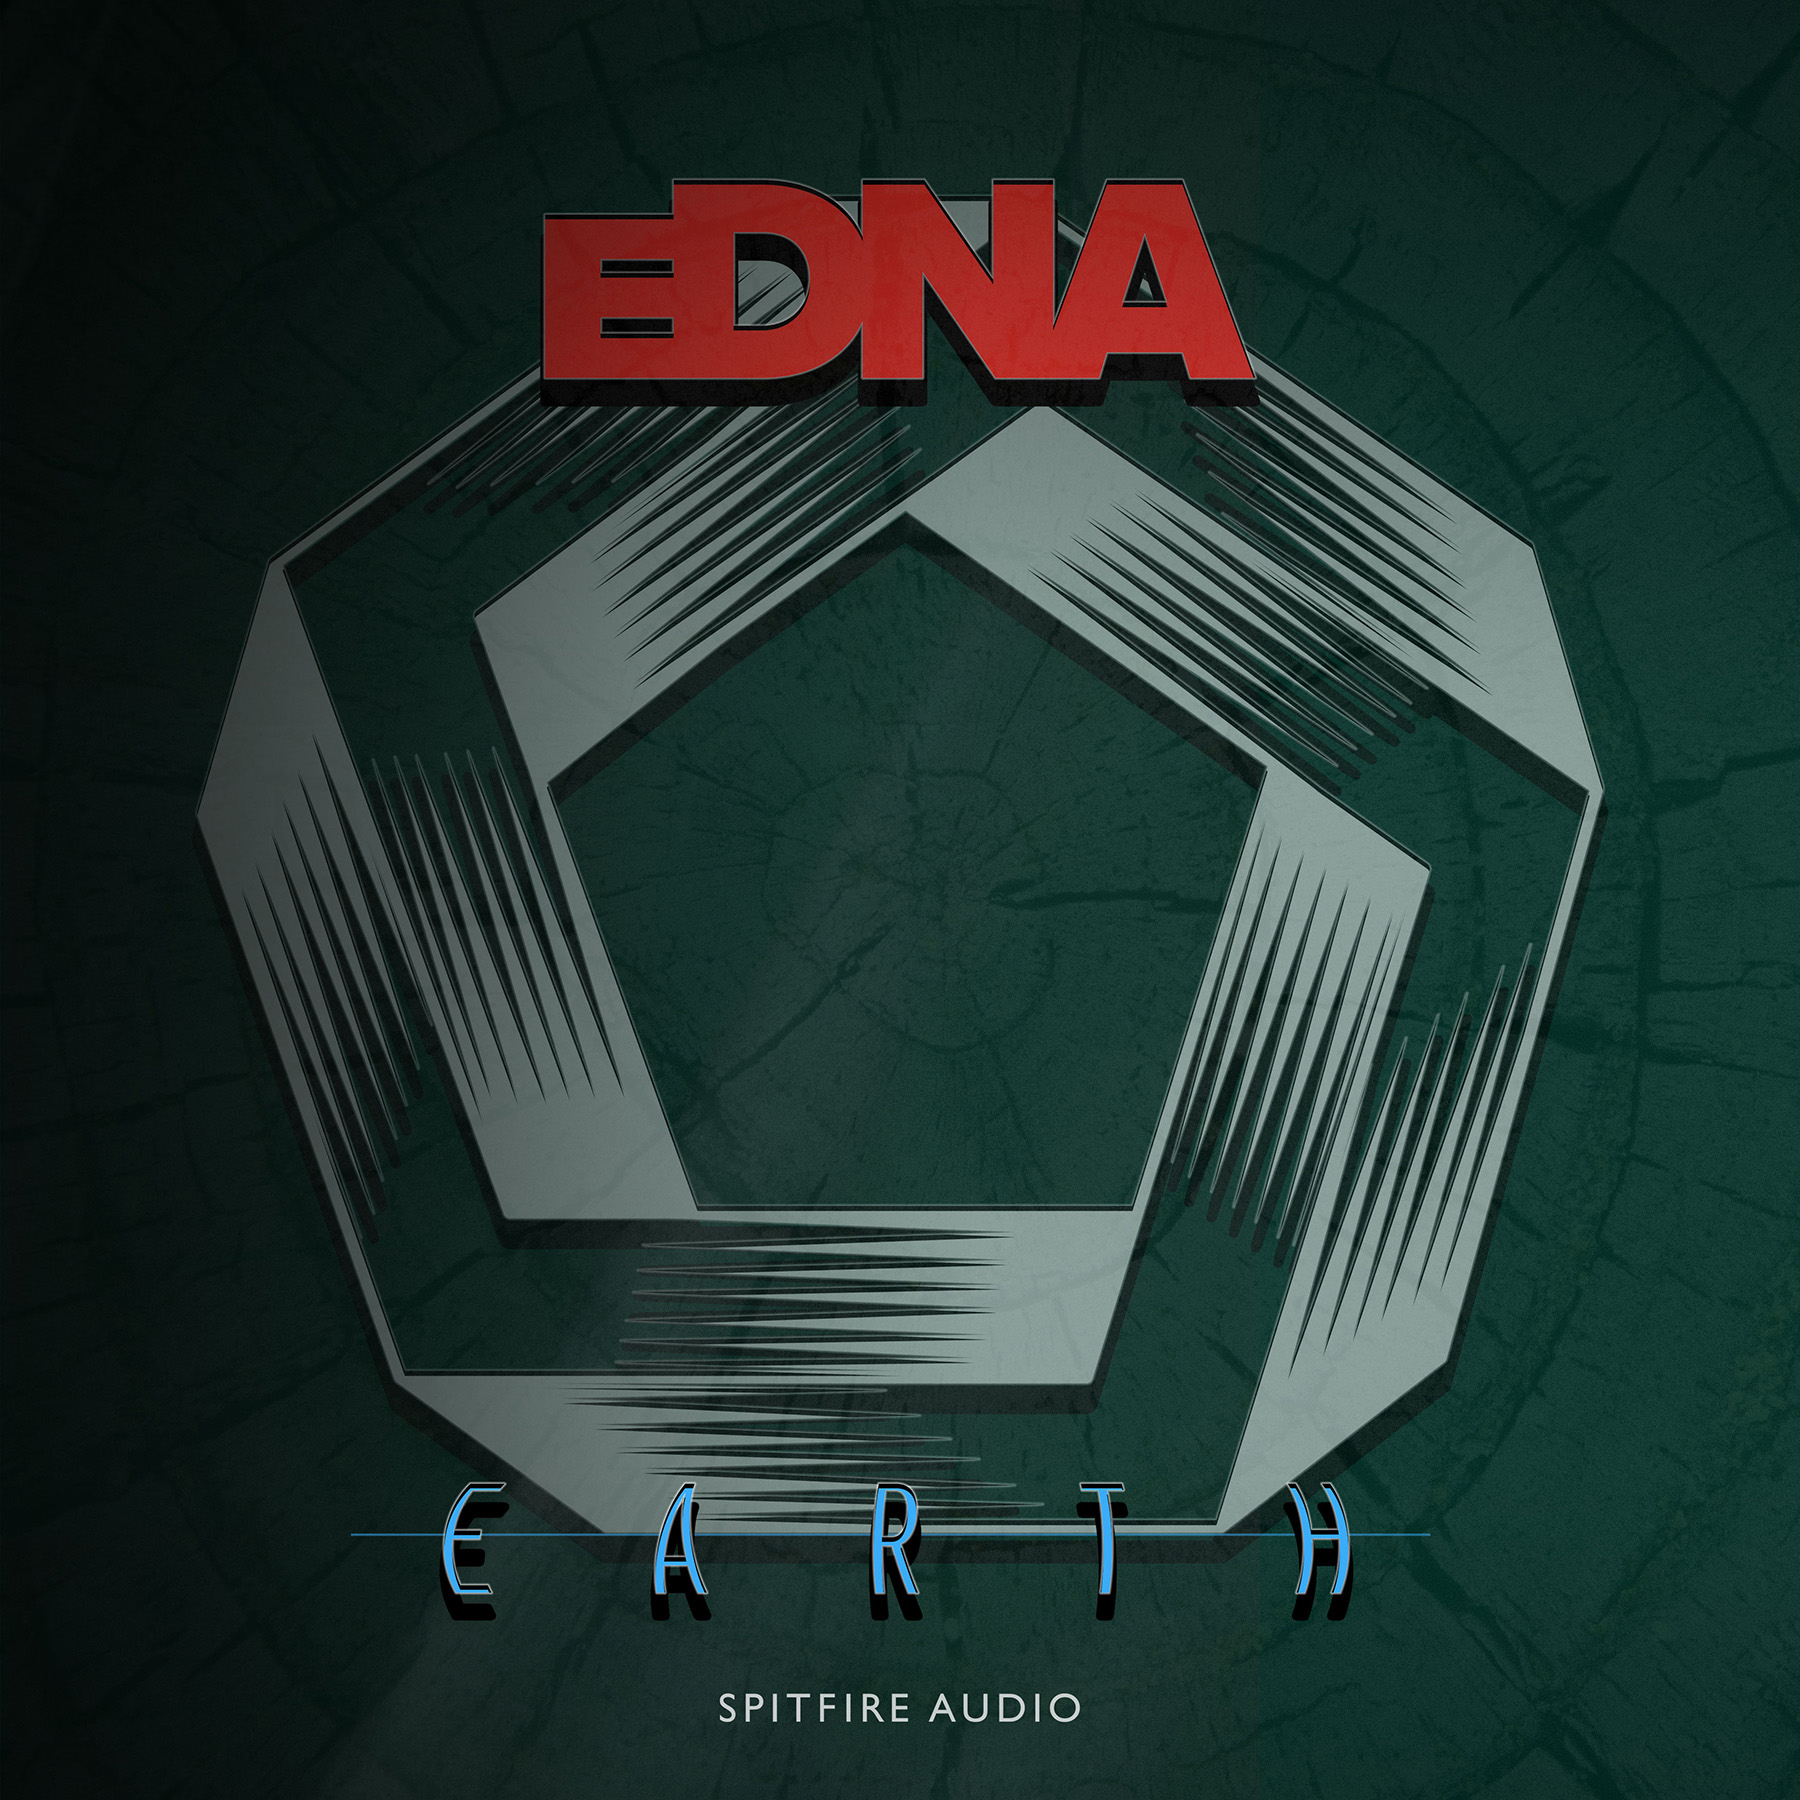 News: Spitfire Audio liefert orchestrale Synth-Sounds mit eDNA EARTH